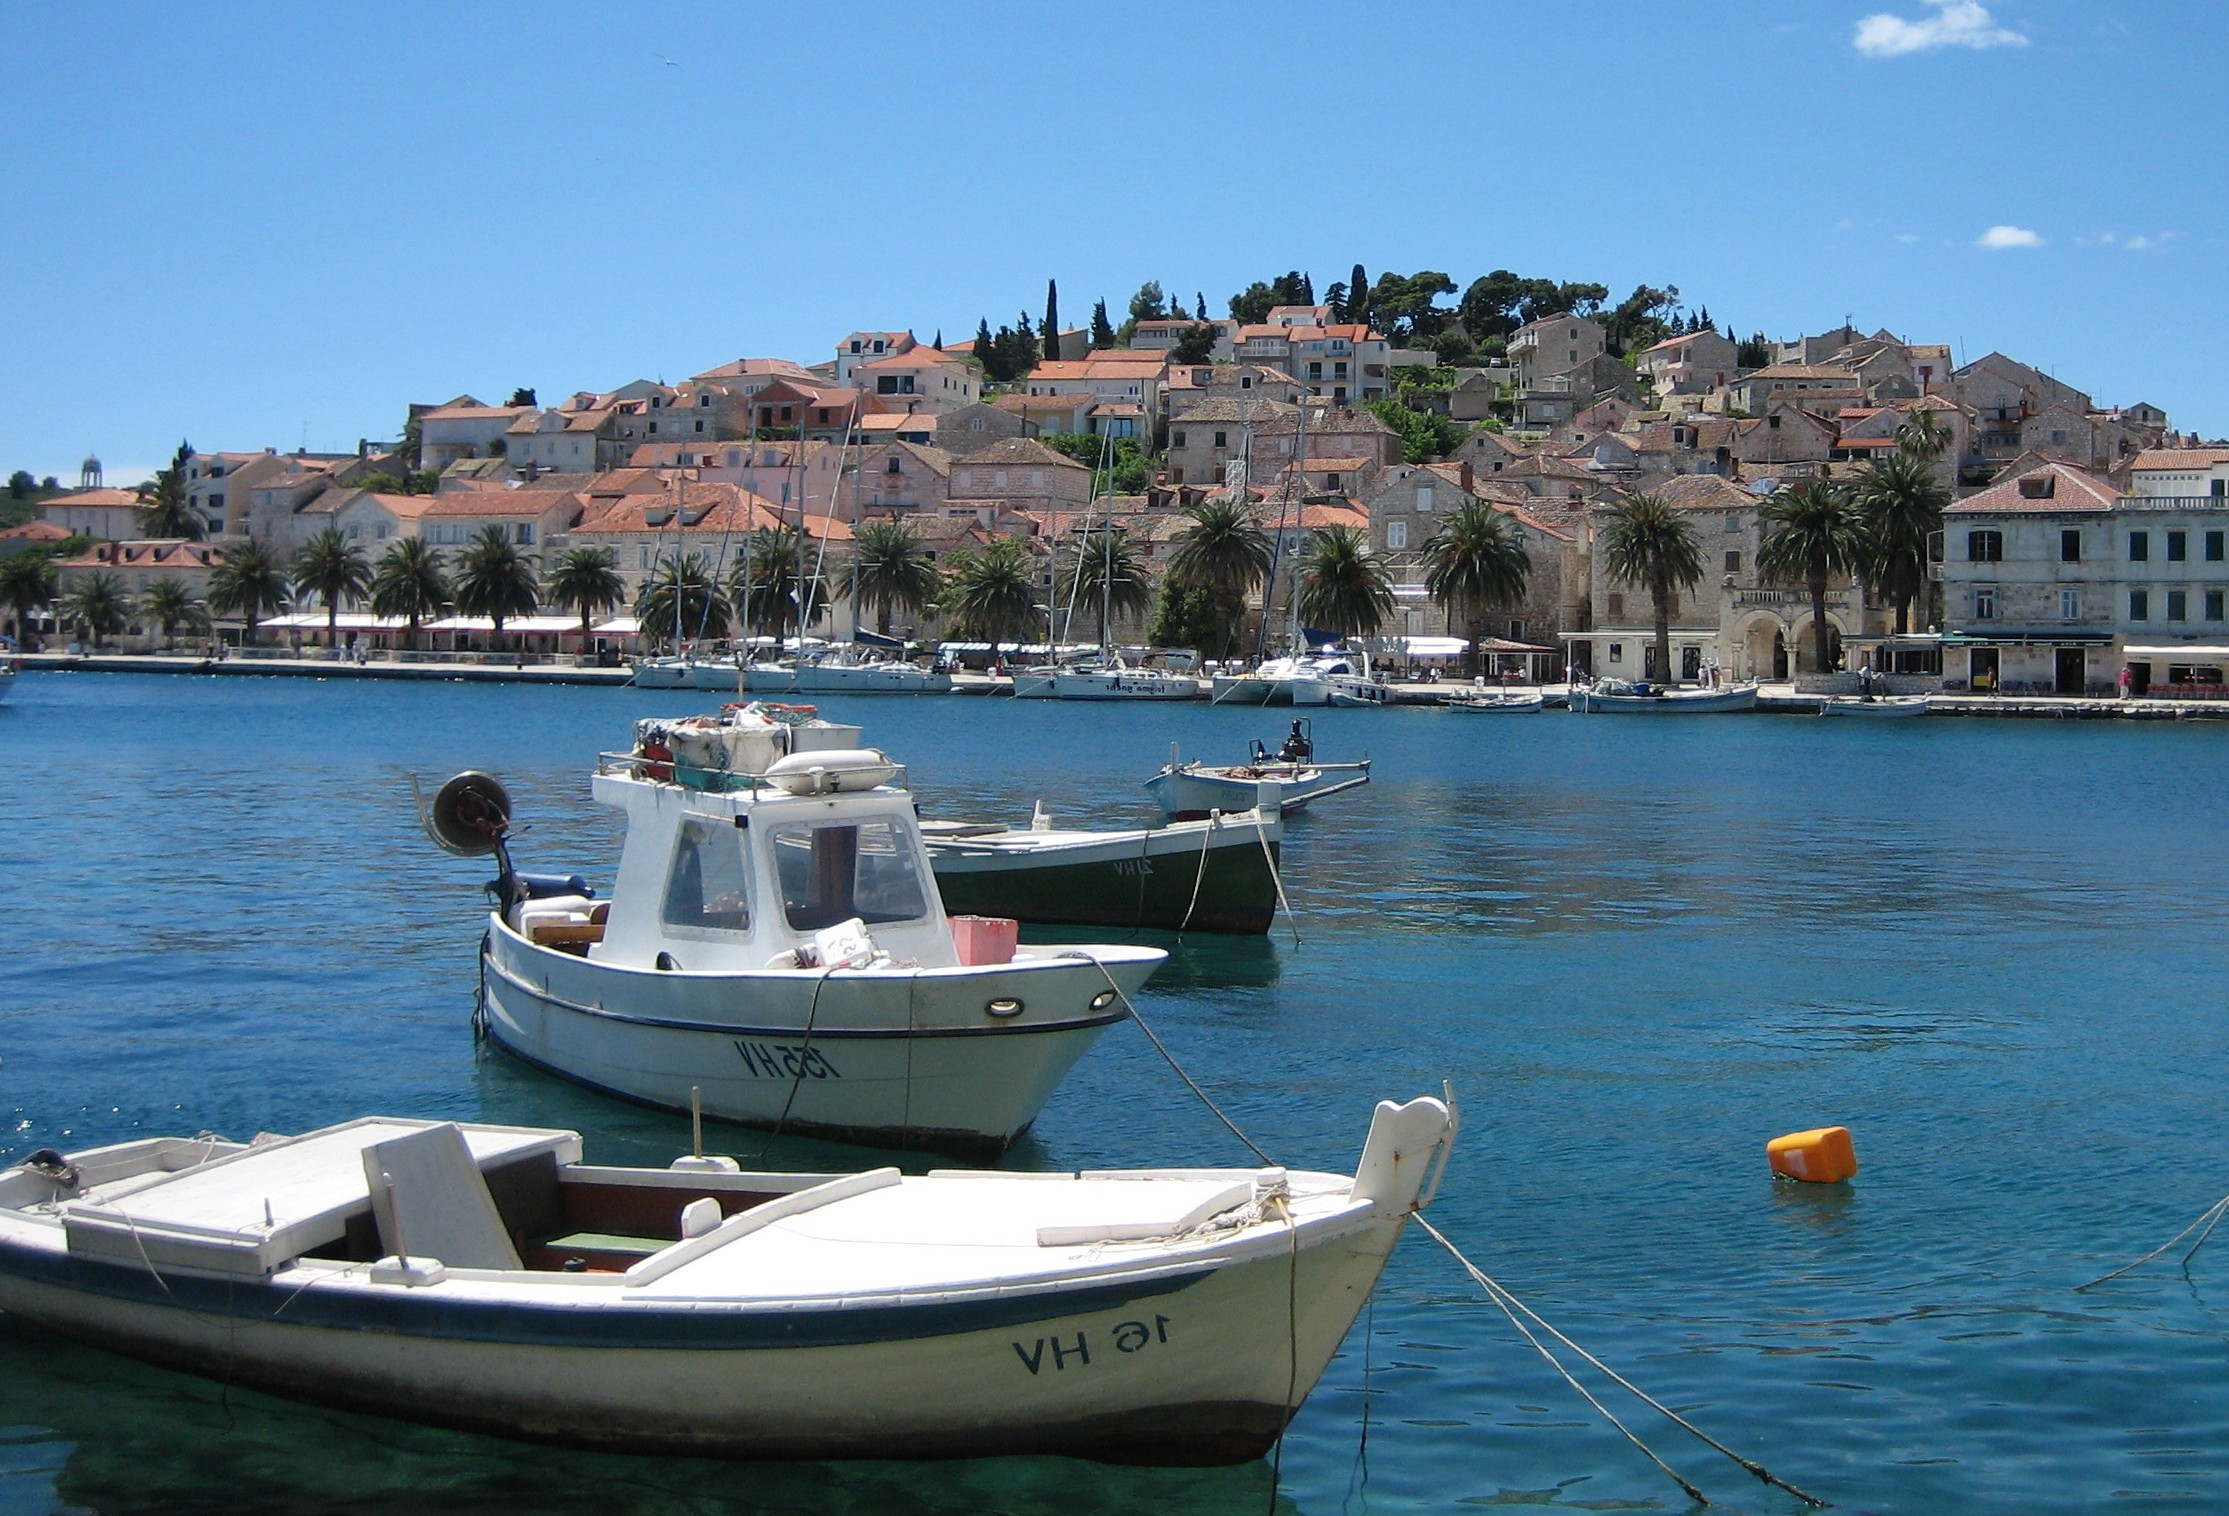 City of Hvar, Island of Hvar